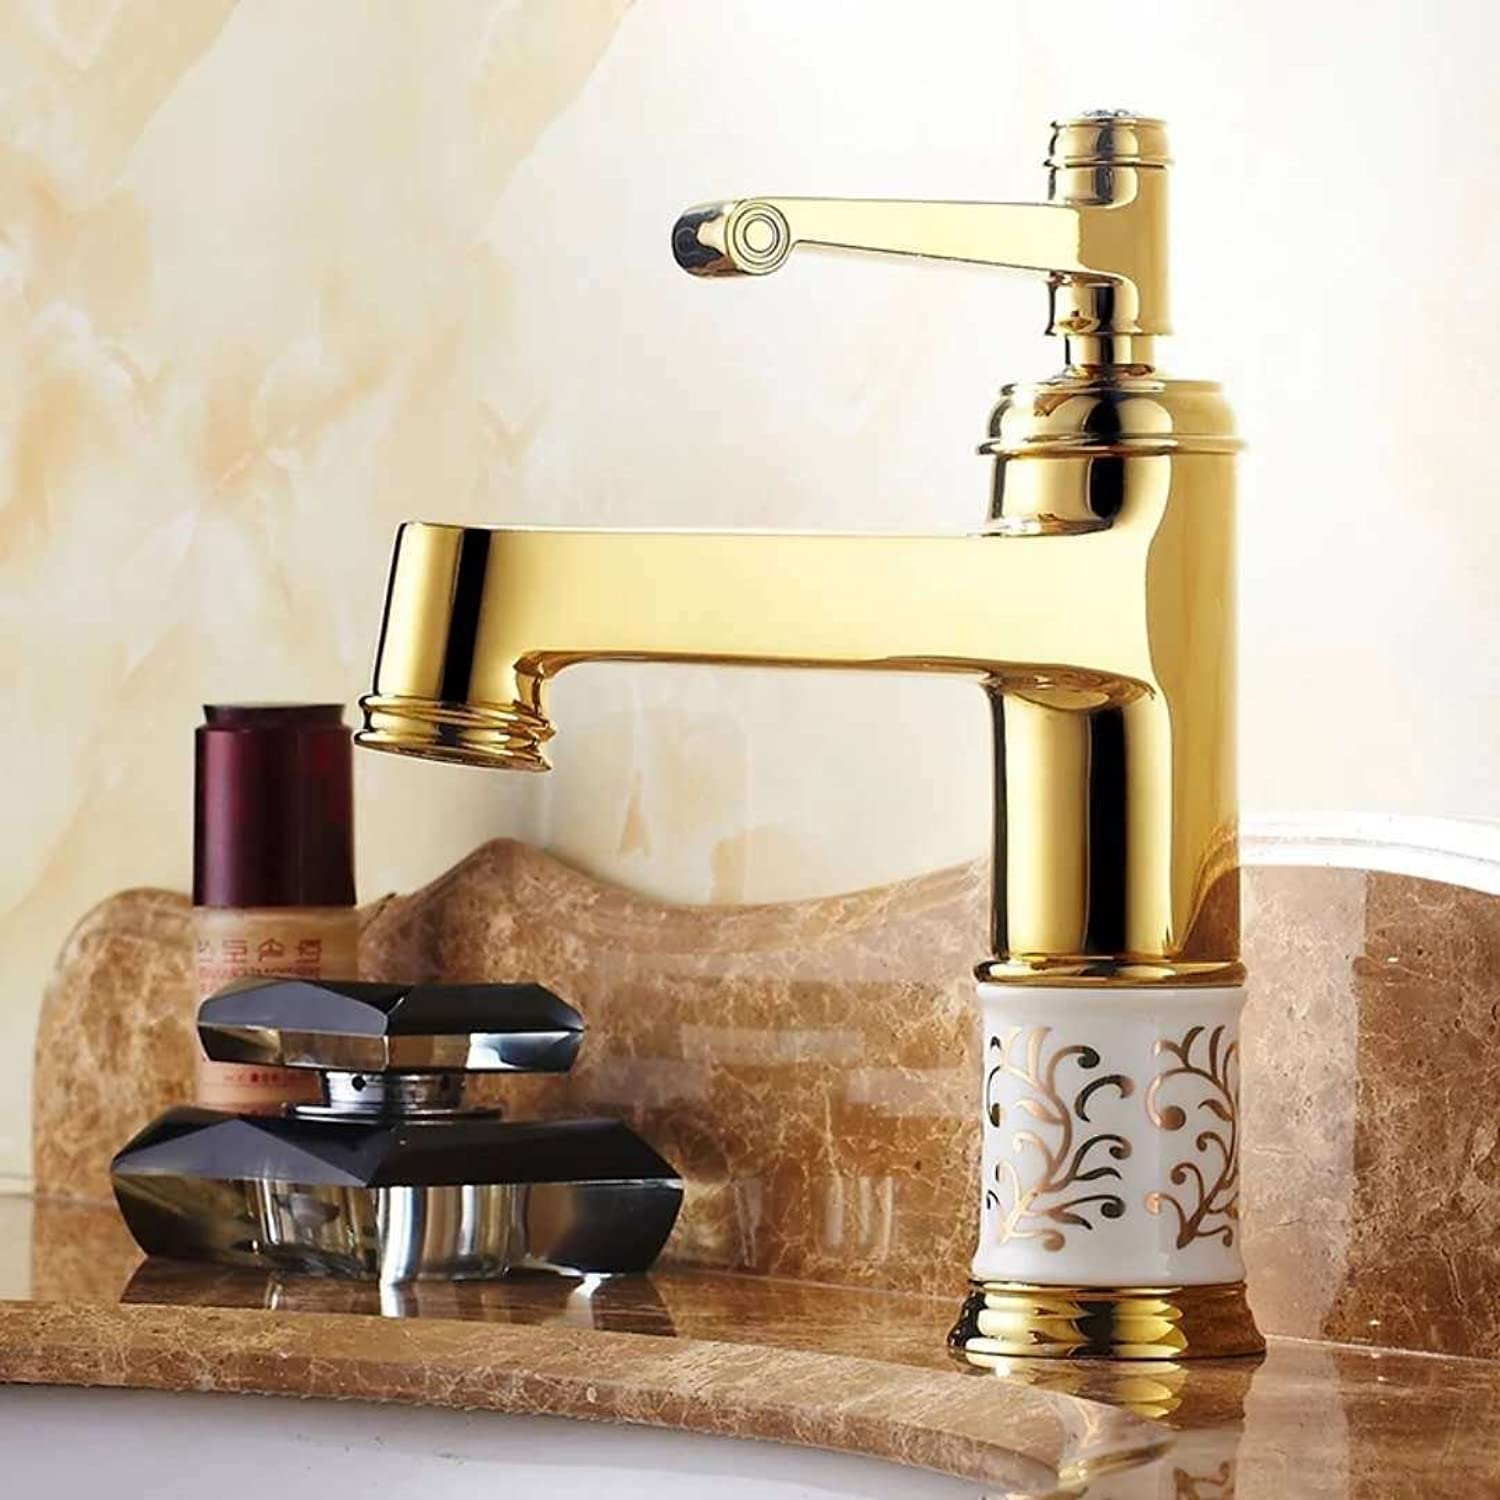 Gyps Faucet Basin Mixer Tap Waterfall Faucet Antique Bathroom Mixer Bar Mixer Shower Set Tap antique bathroom faucet Surface Sinks Faucets full copper antique bluee ceramic hot and cold valves tjin,Mo